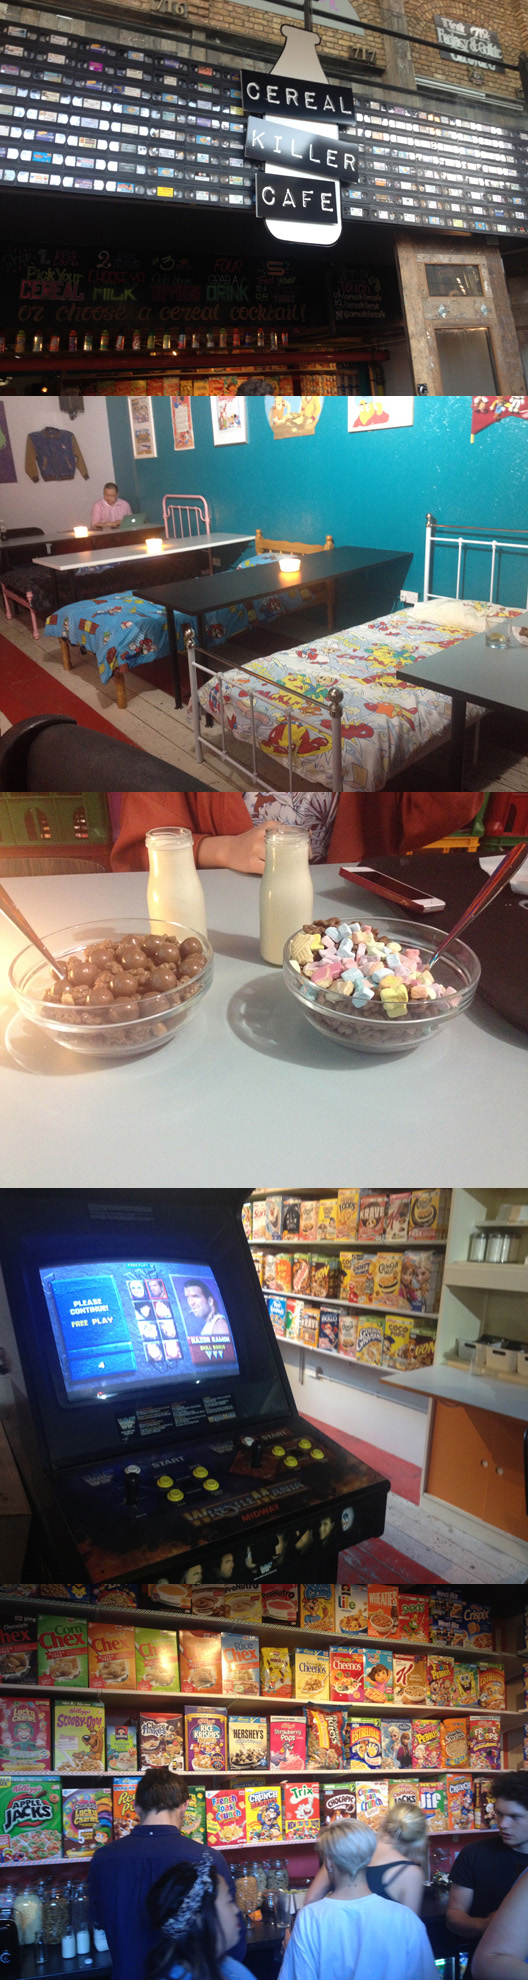 There's a new cereal café in London as the Cereal Killer gang open a second branch in Camden Stables. (They already have one on Brick Lane, Shoreditch.)